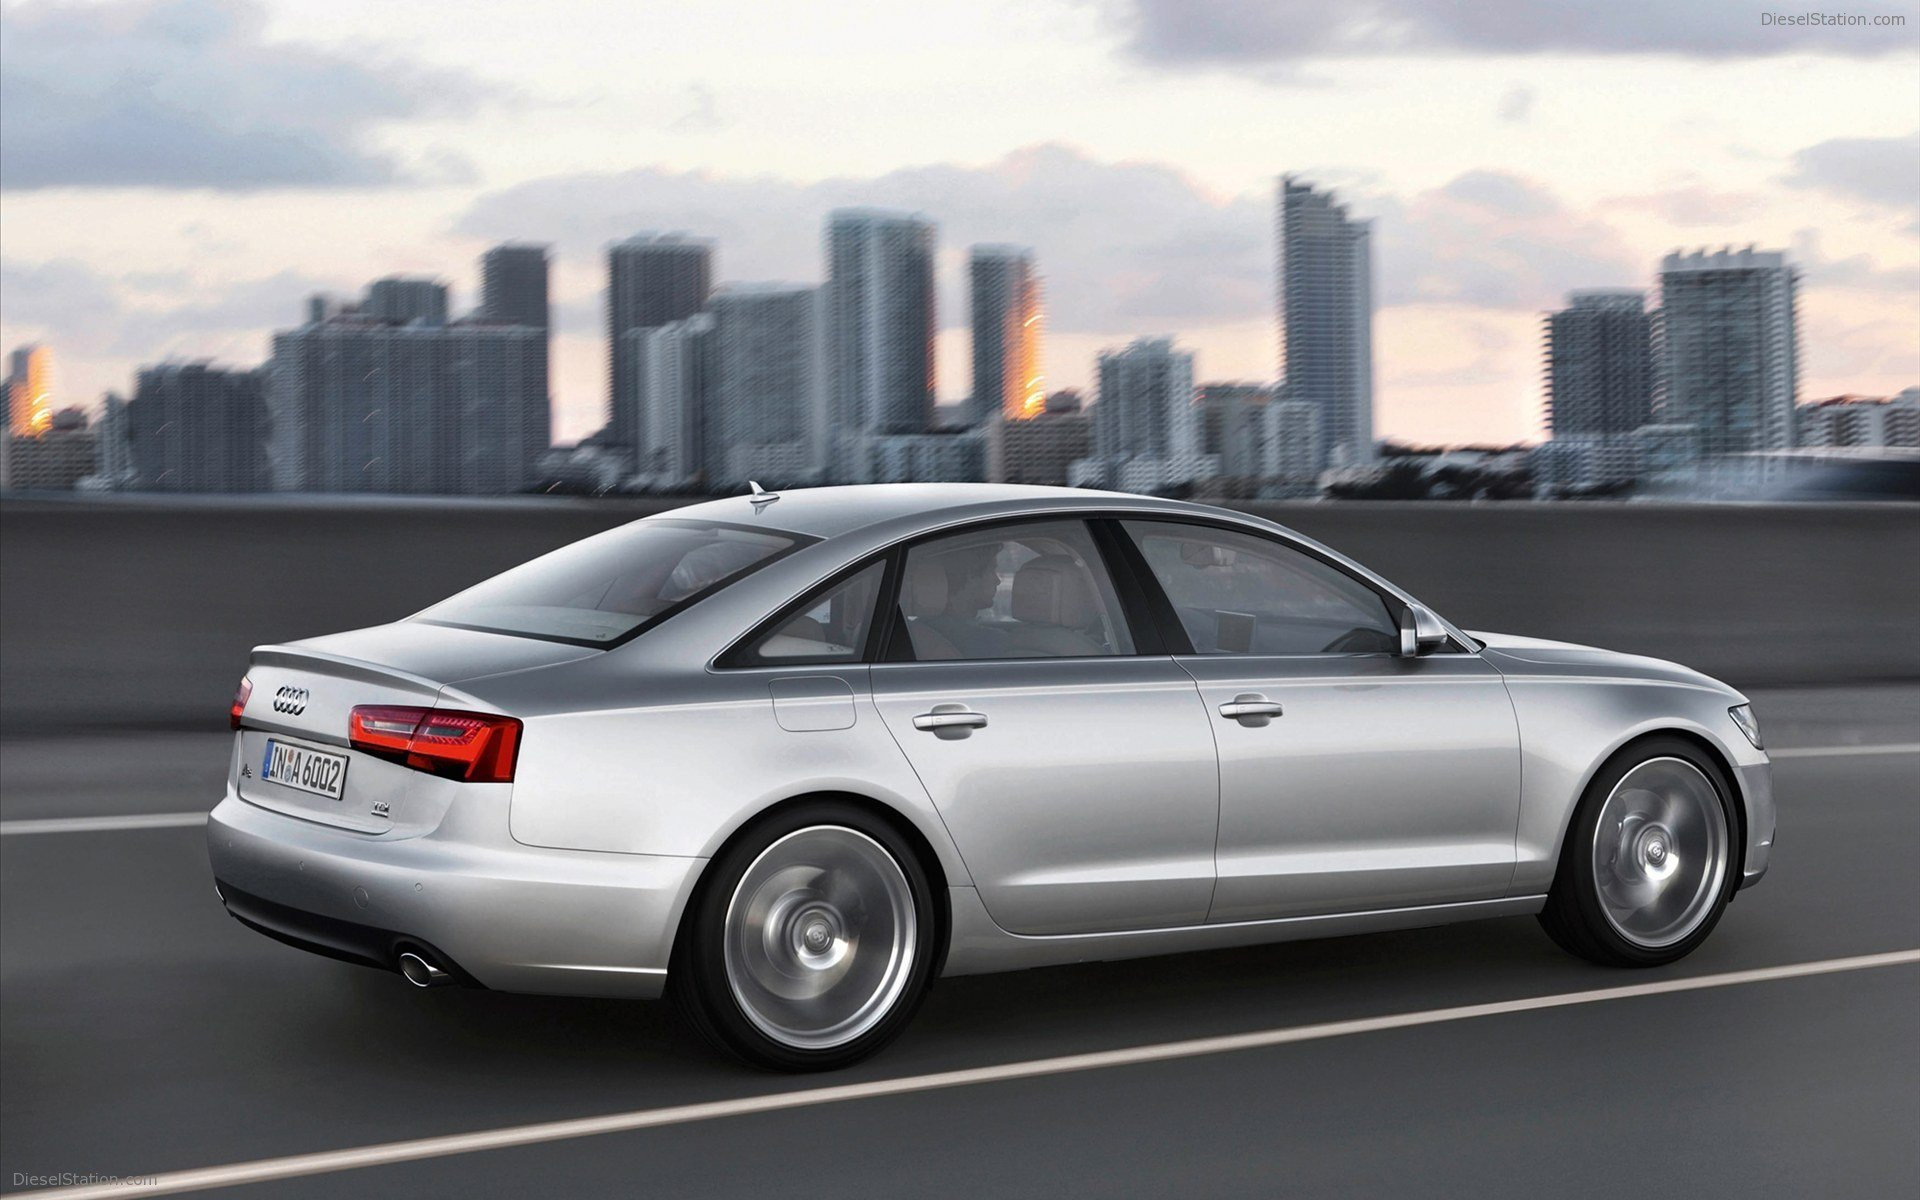 Latest Audi A6 2011 Widescreen Exotic Car Wallpaper 03 Of 10 Free Download